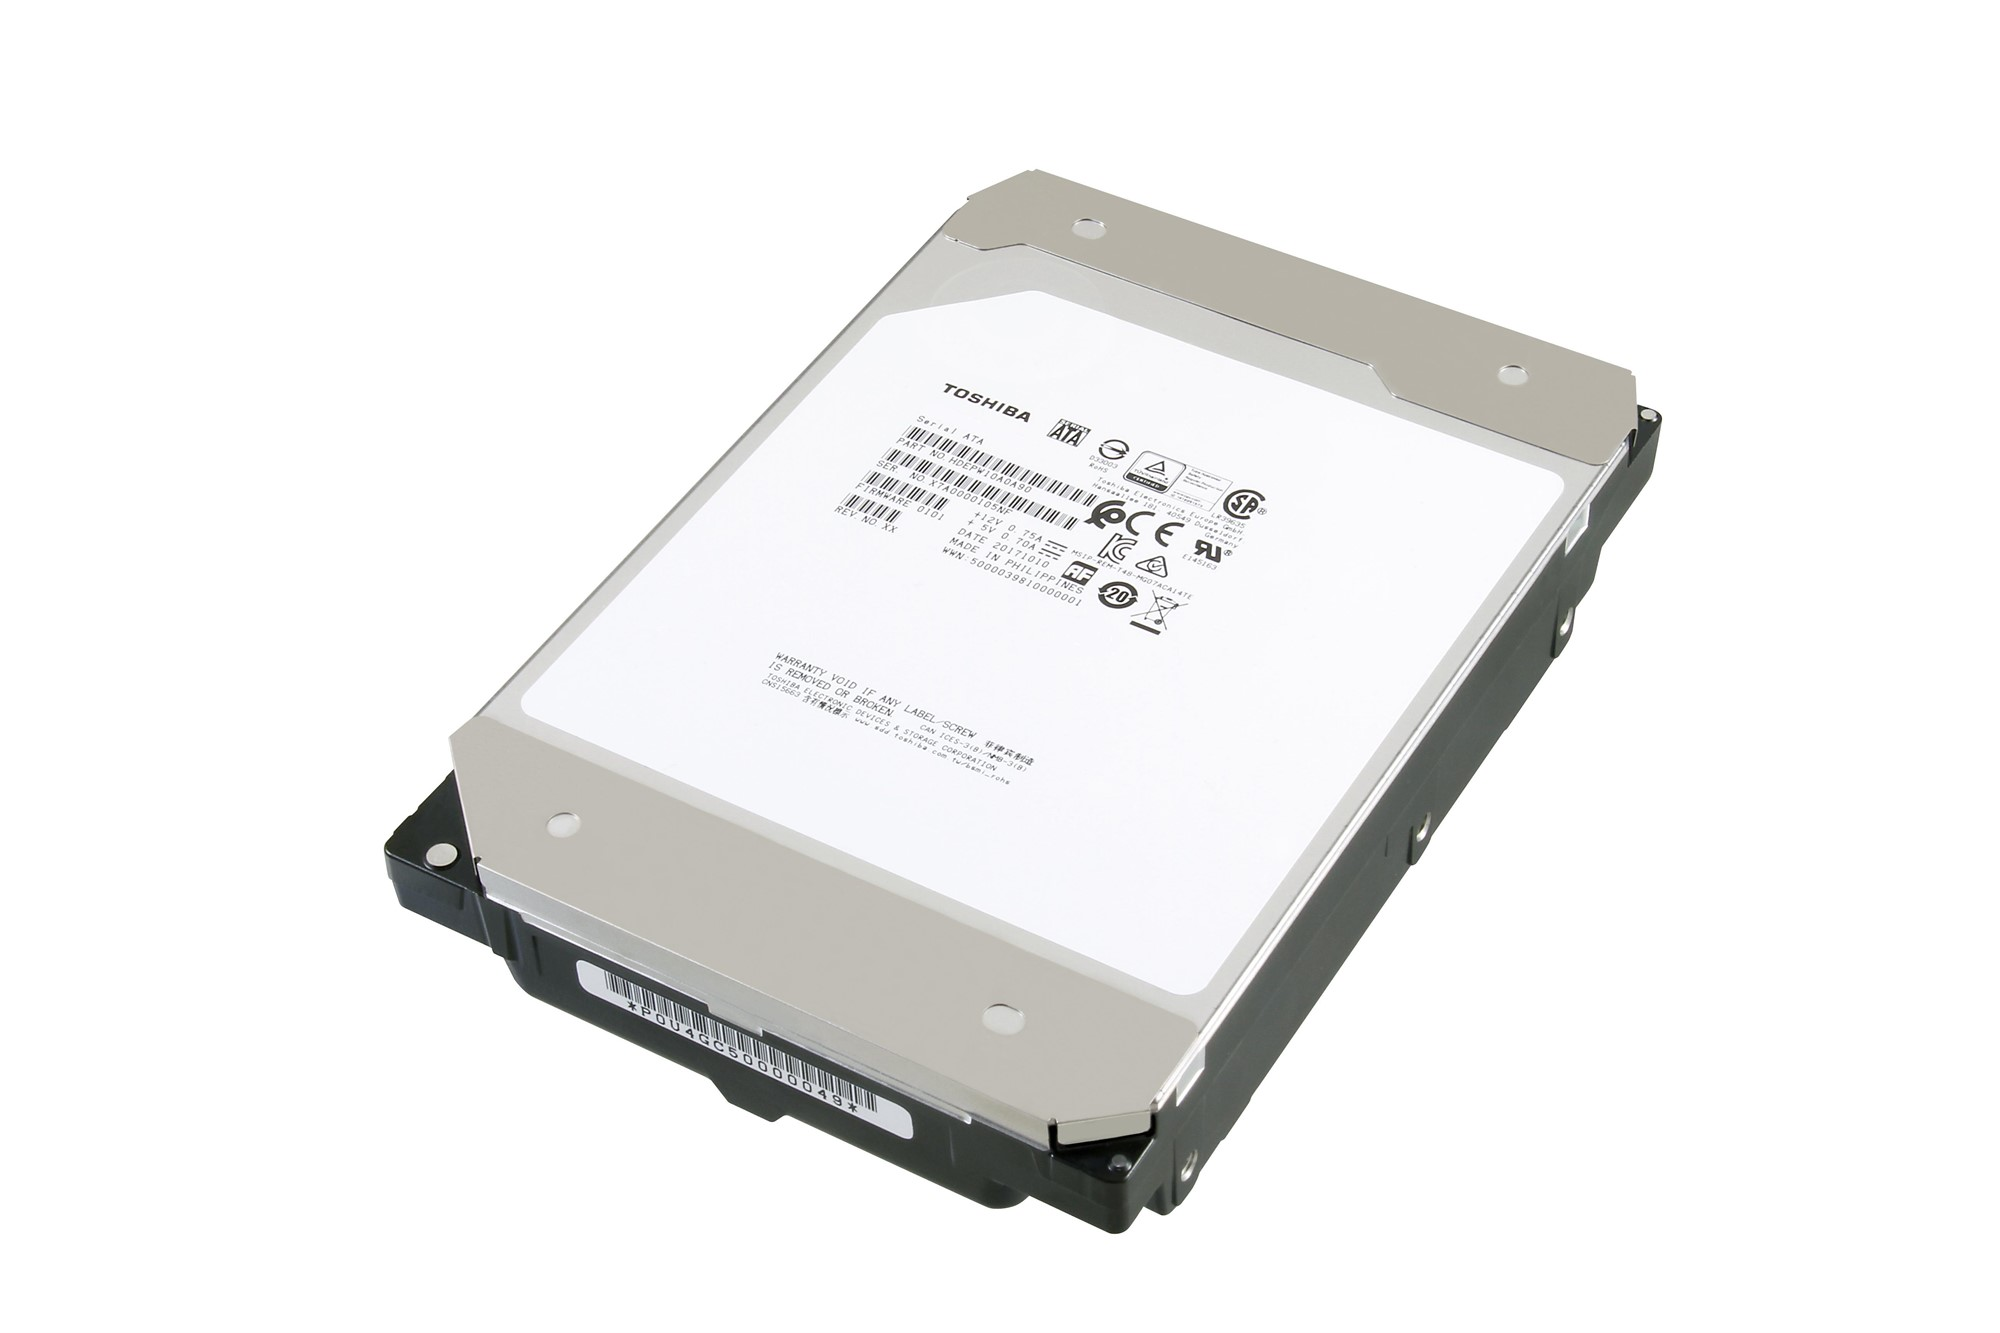 TOSHIBA MG07ACA14TE HDD 14000GB SERIAL ATA INTERNAL HARD DRIVE